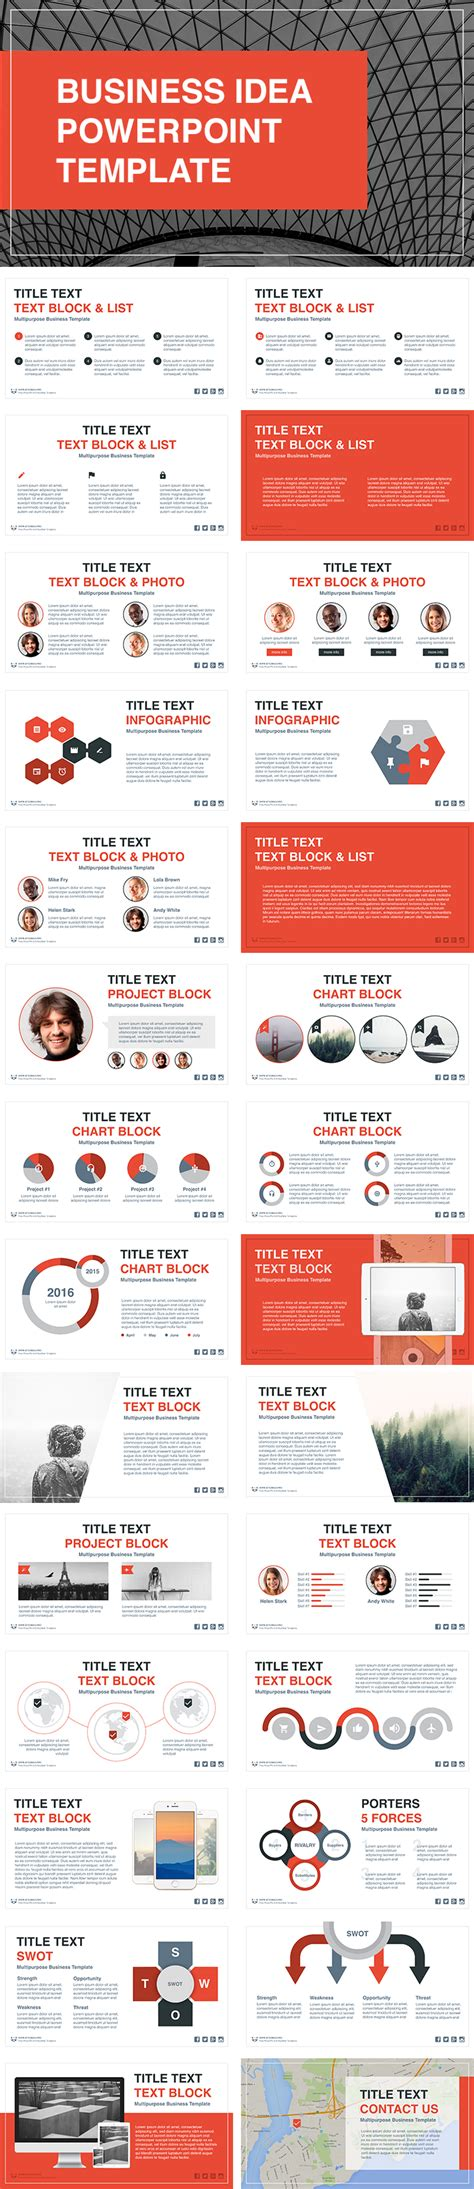 powerpoint change template for entire presentation business idea free powerpoint template download free